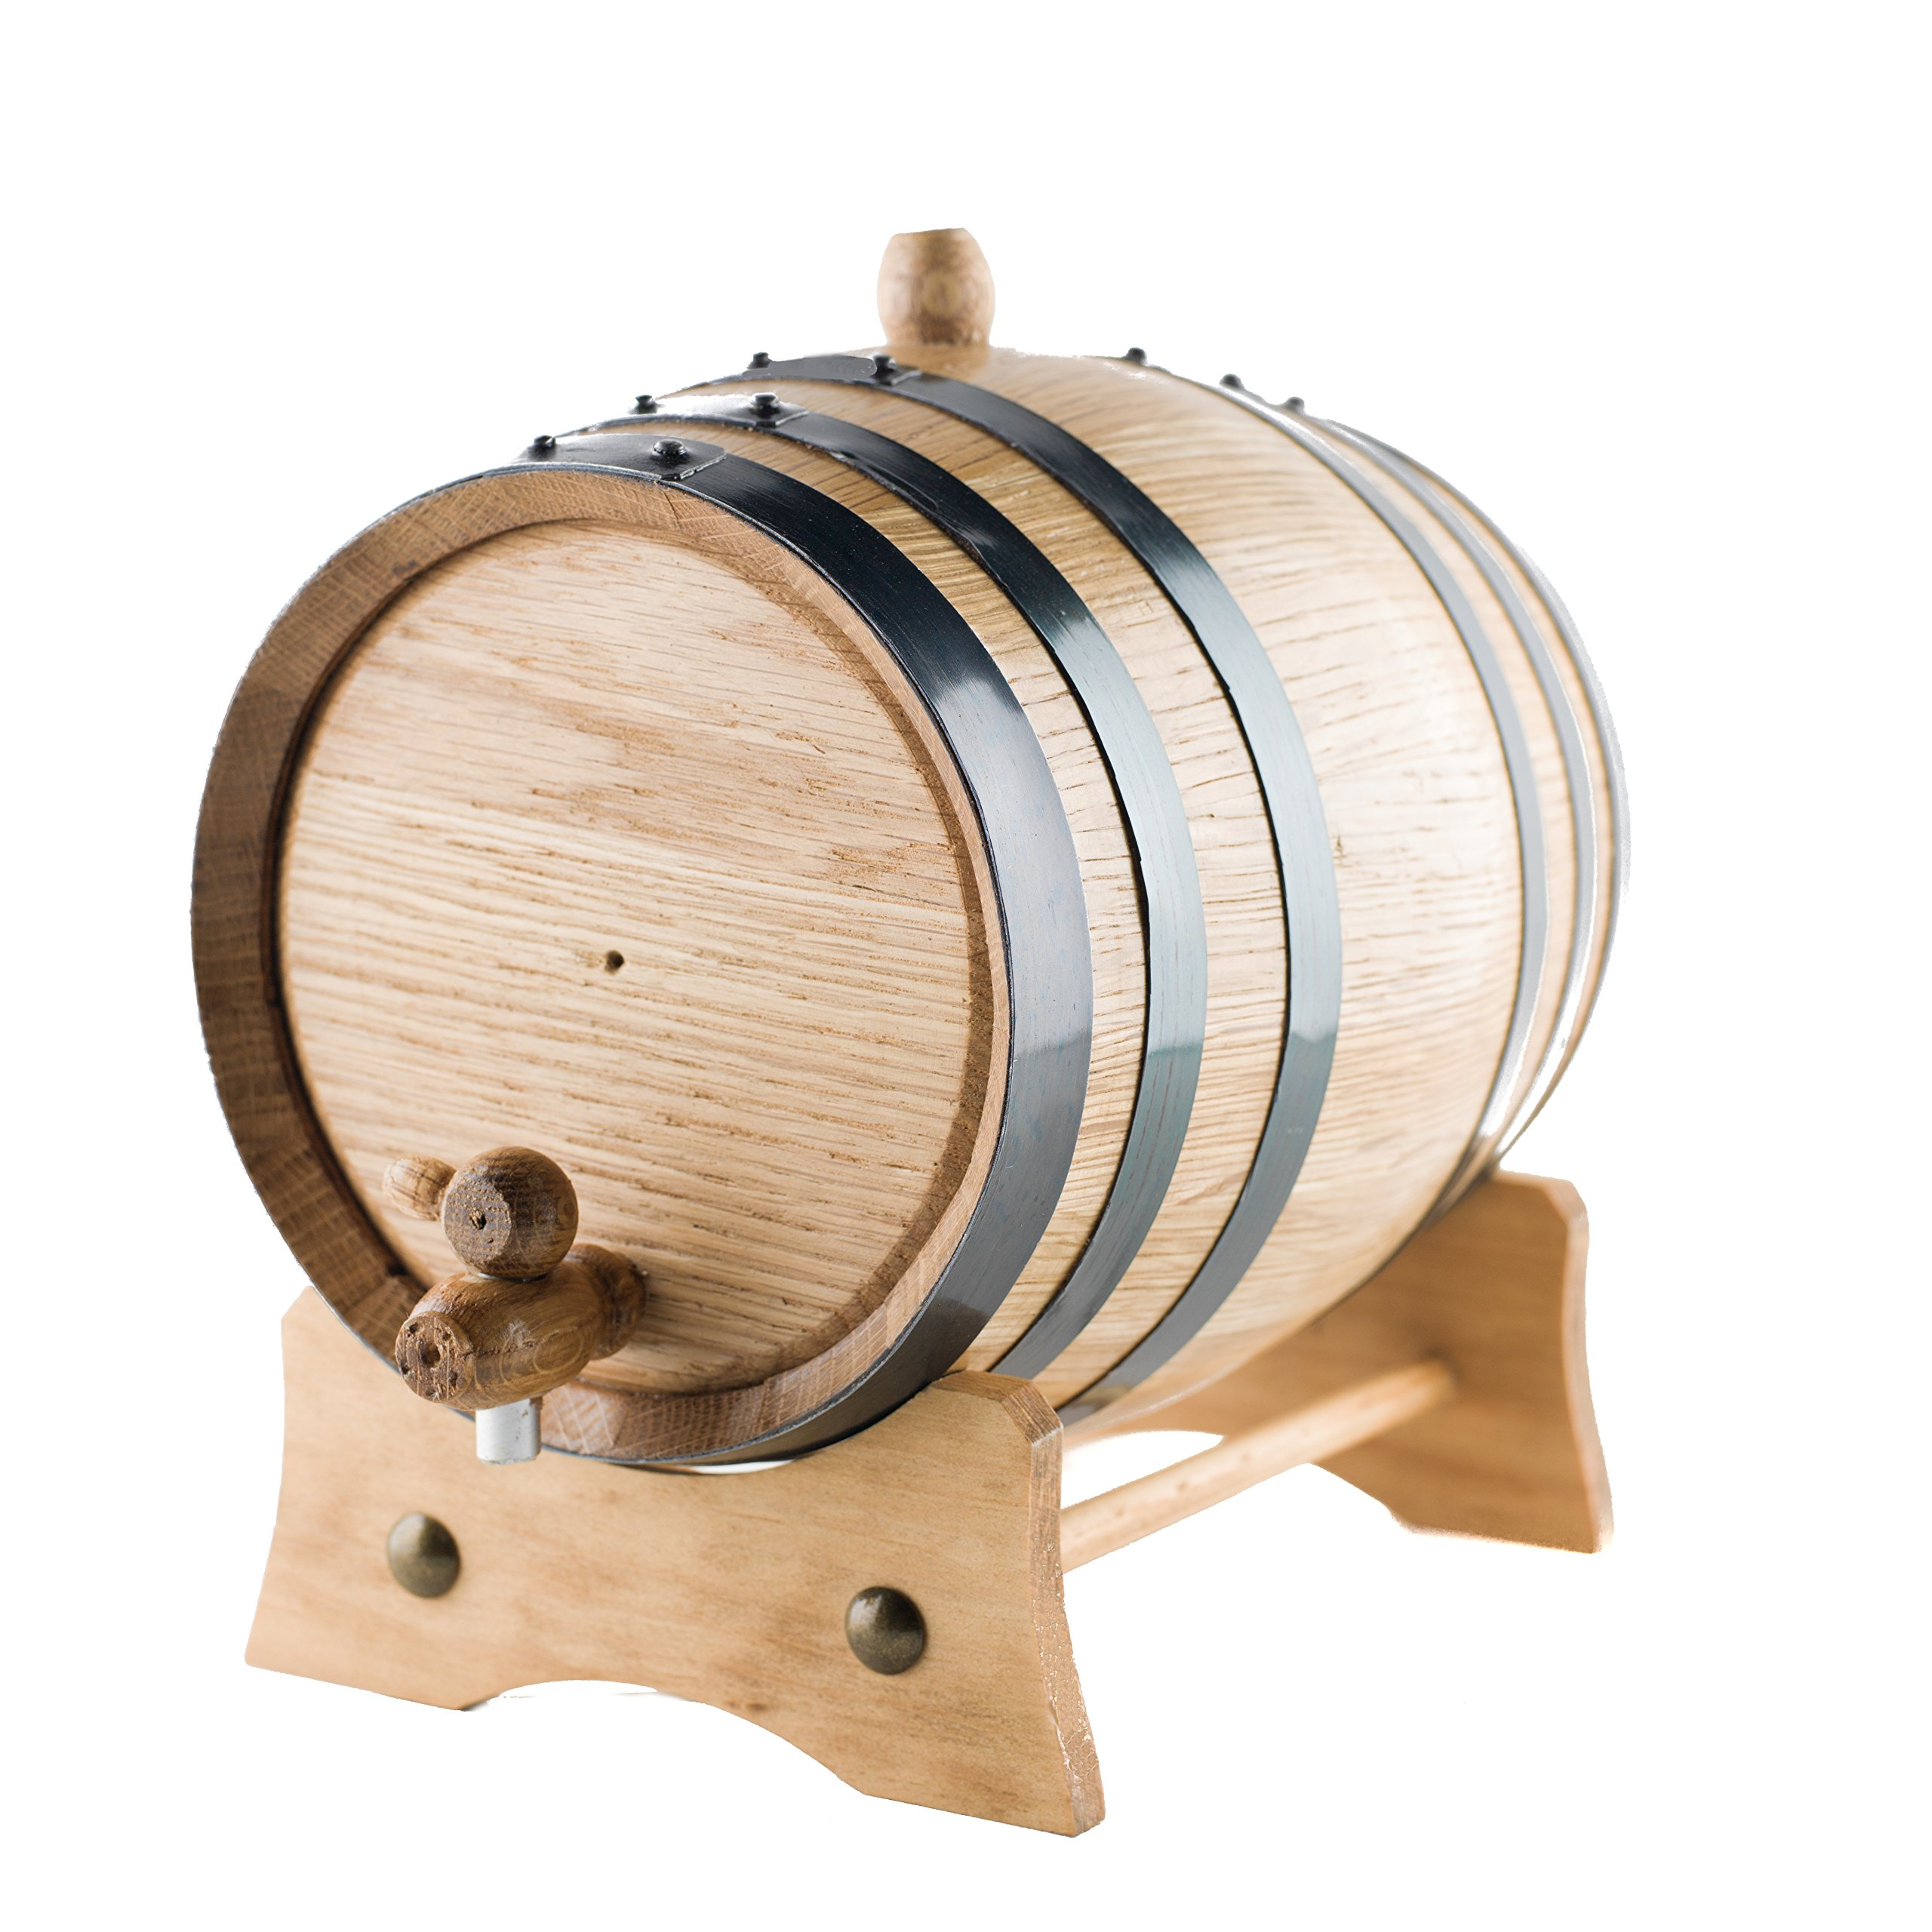 3 Liter American Oak Aging Barrel | Handcrafted using American White Oak | Age your own Whiskey, Beer, Wine, Bourbon, Rum, Tequila & More.